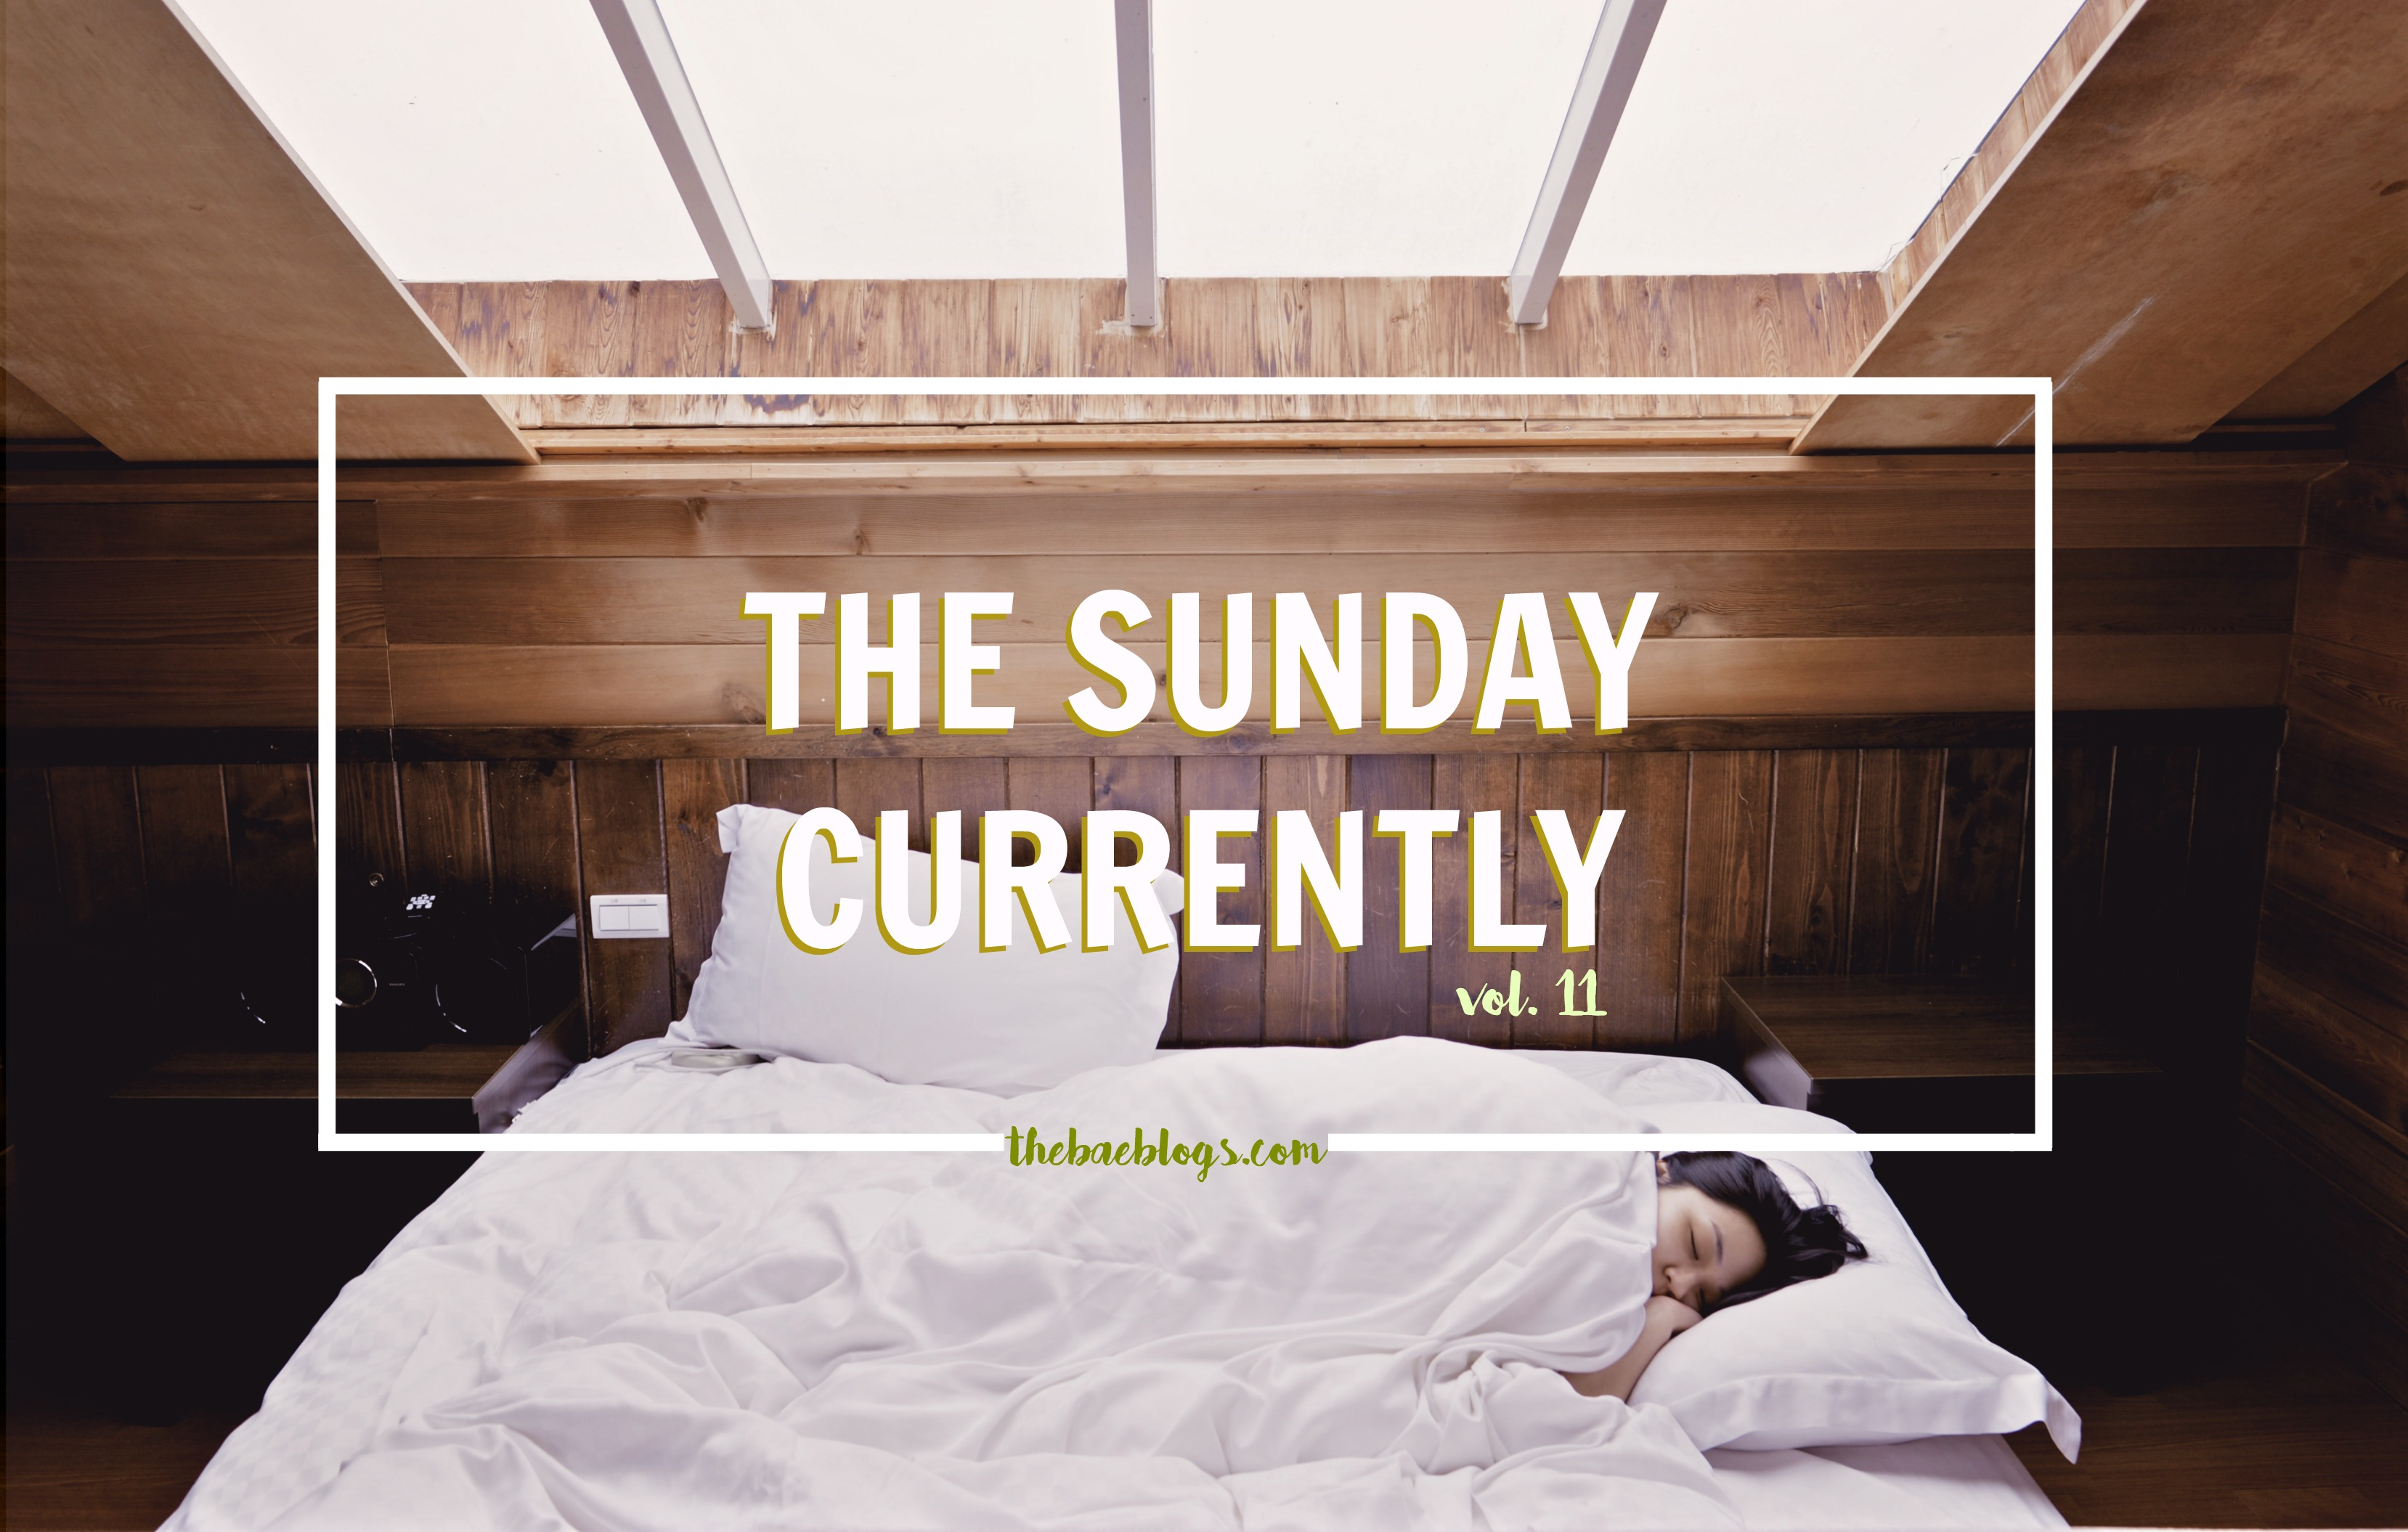 the-sunday-currently-vol-11